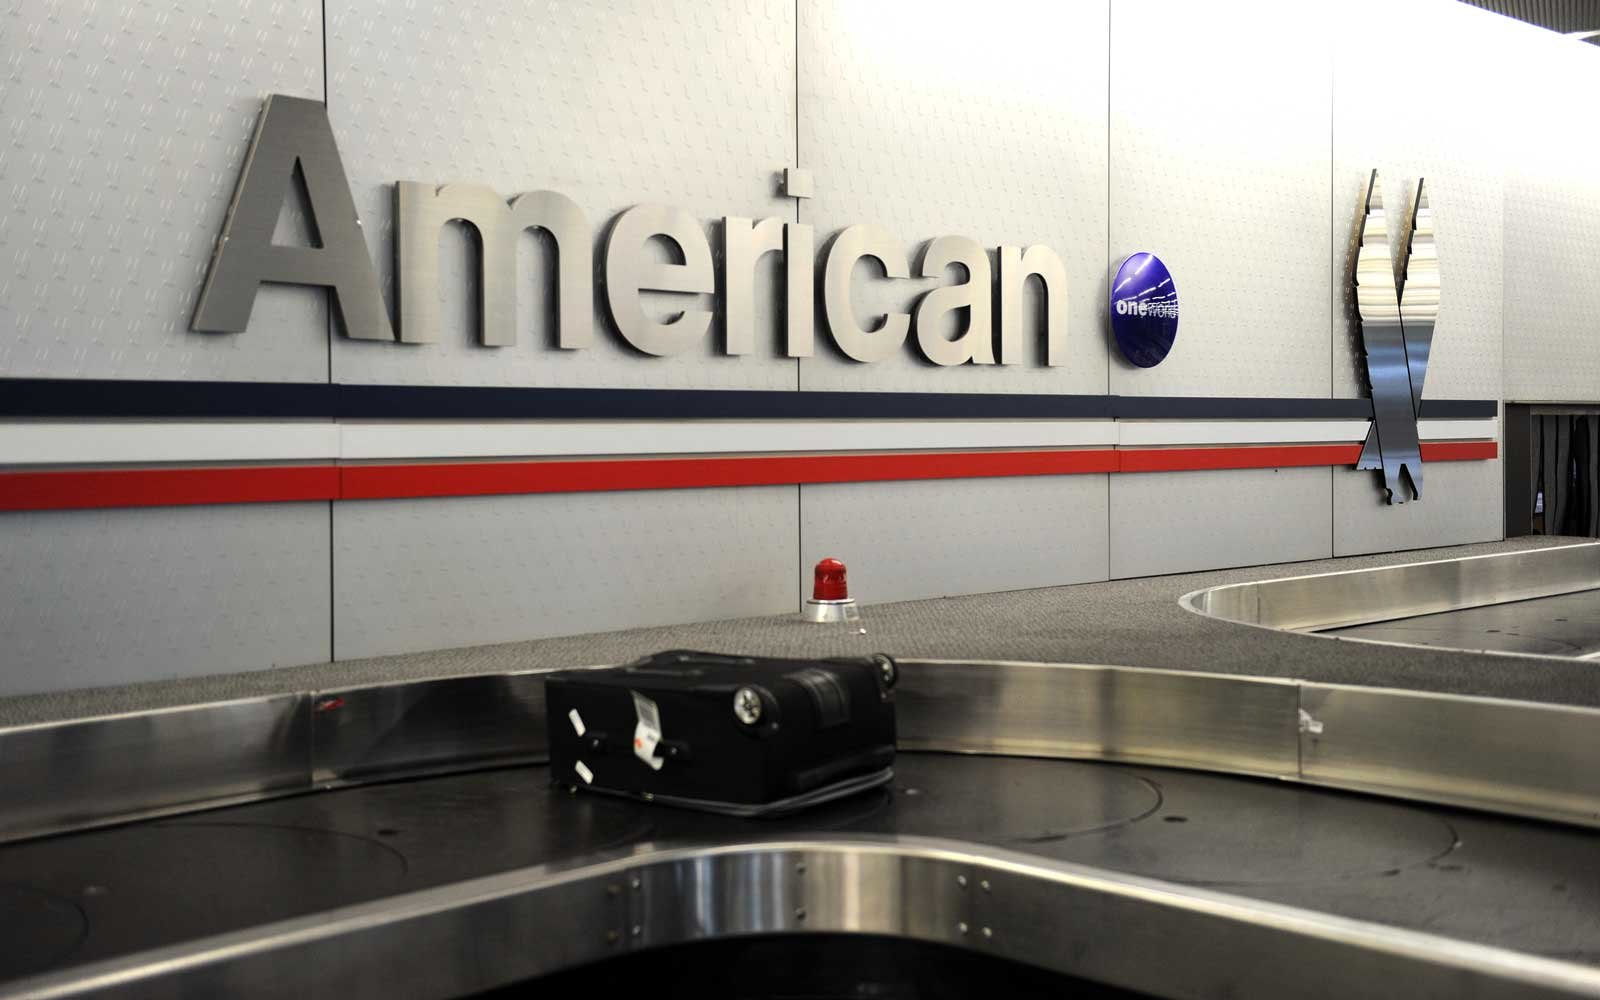 An American Airlines baggage claim is seen at Chicago's O'Hare airport